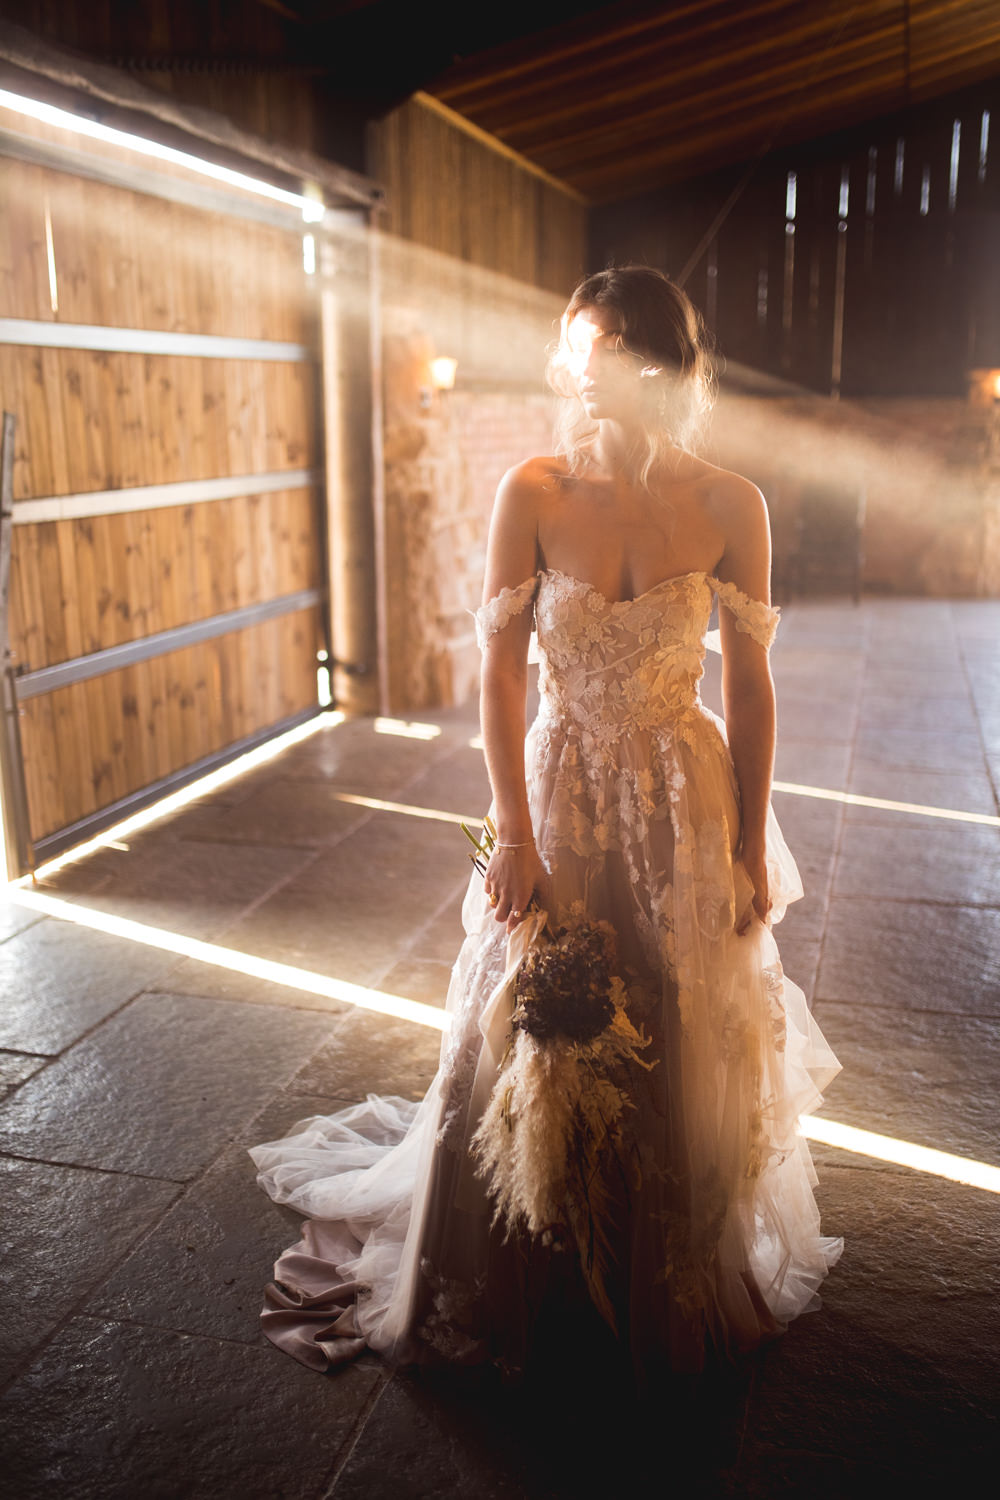 Dress Gown Bride Brdal Blush Lace Tulle Madi Lane Off Shouder Bardot Dried Flower Wedding Ideas Dan Lambourne Photography